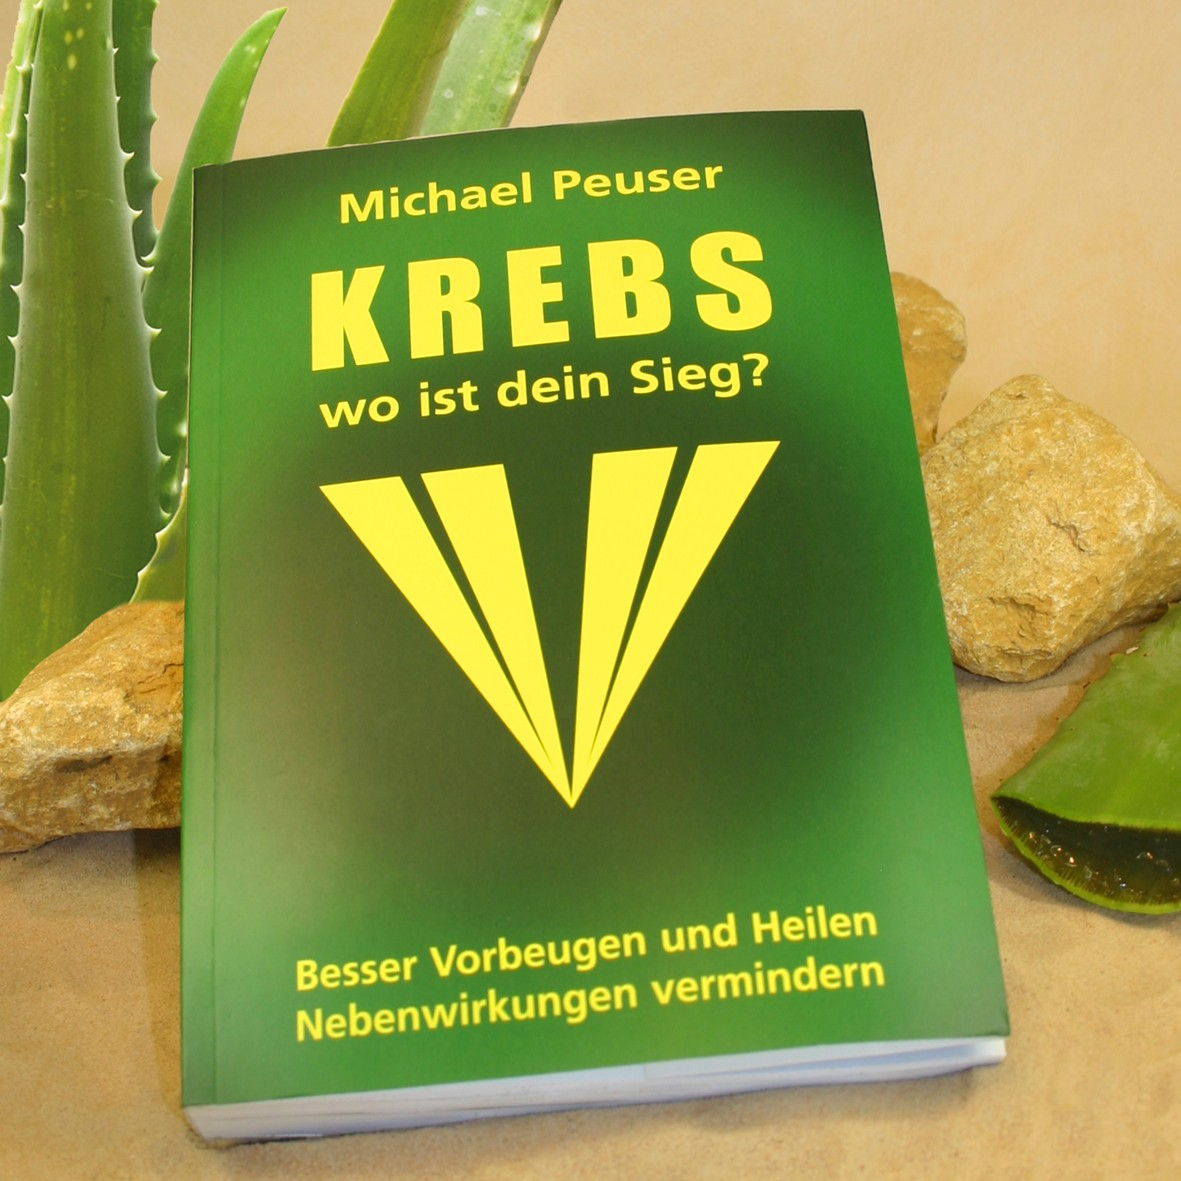 aloe vera zentrum buch krebs wo ist dein sieg aloe vera literatur produkte. Black Bedroom Furniture Sets. Home Design Ideas